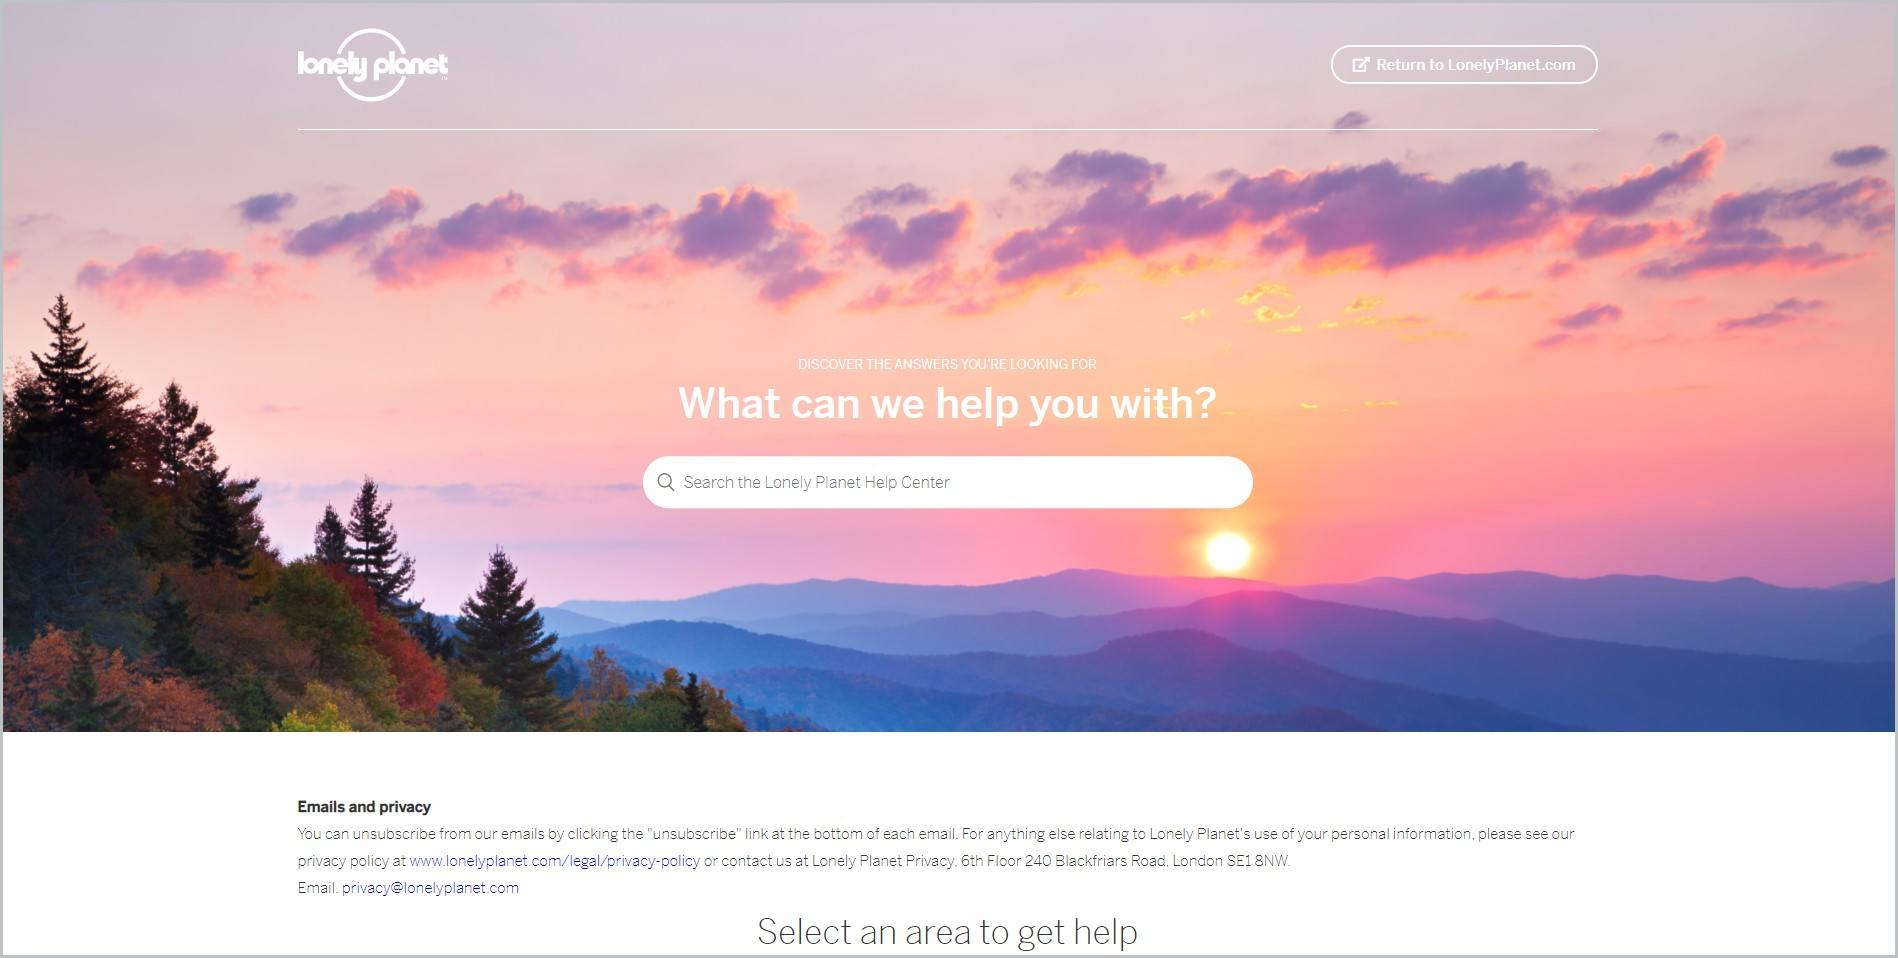 screenshot of Lonely Planet homepage featuring an image of the sky with clouds and the sun rising above the mountain ranges